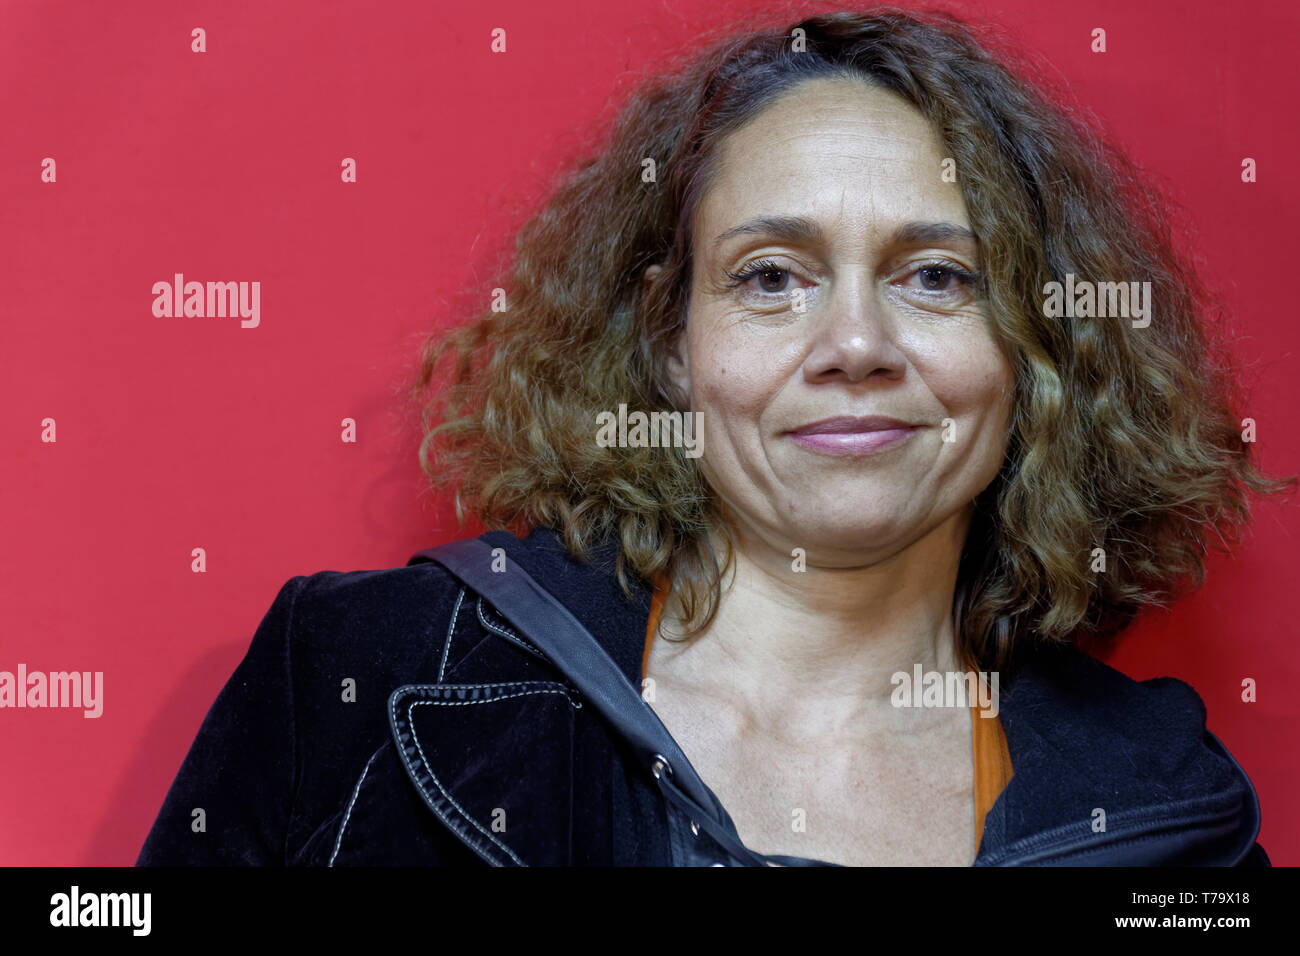 Villejuif,France.31th Jan 2019.Emmanuelle Honorin attends Jairo's Positives Micro-Ondes show at Arts-Mada.Credit:Veronique Phitoussi/Alamy Stock Photo - Stock Image